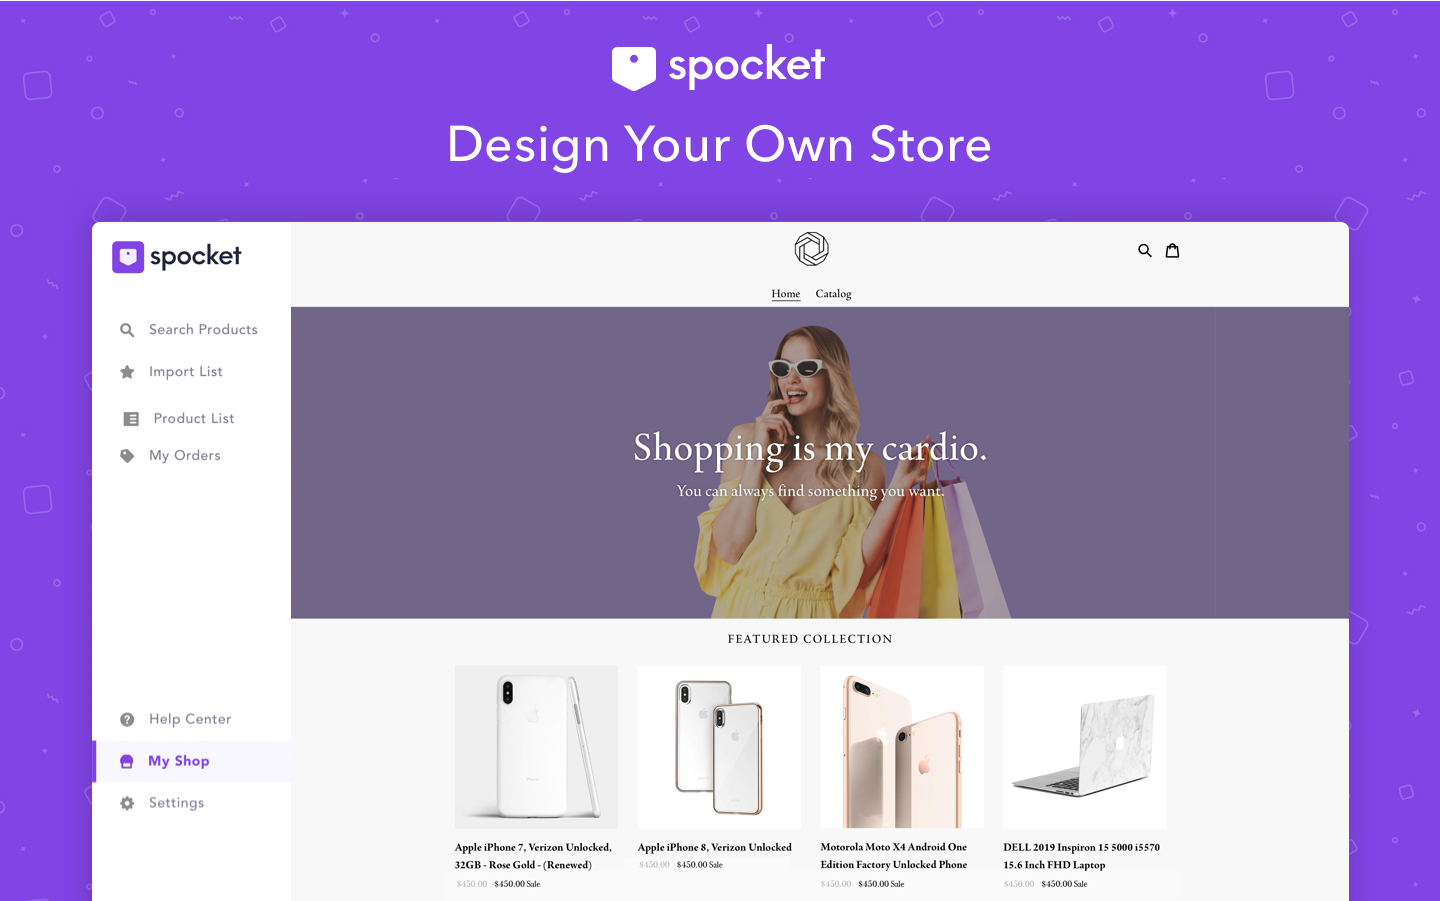 Spocket helps dropshippers around the world discover and dropship US/EU based products.